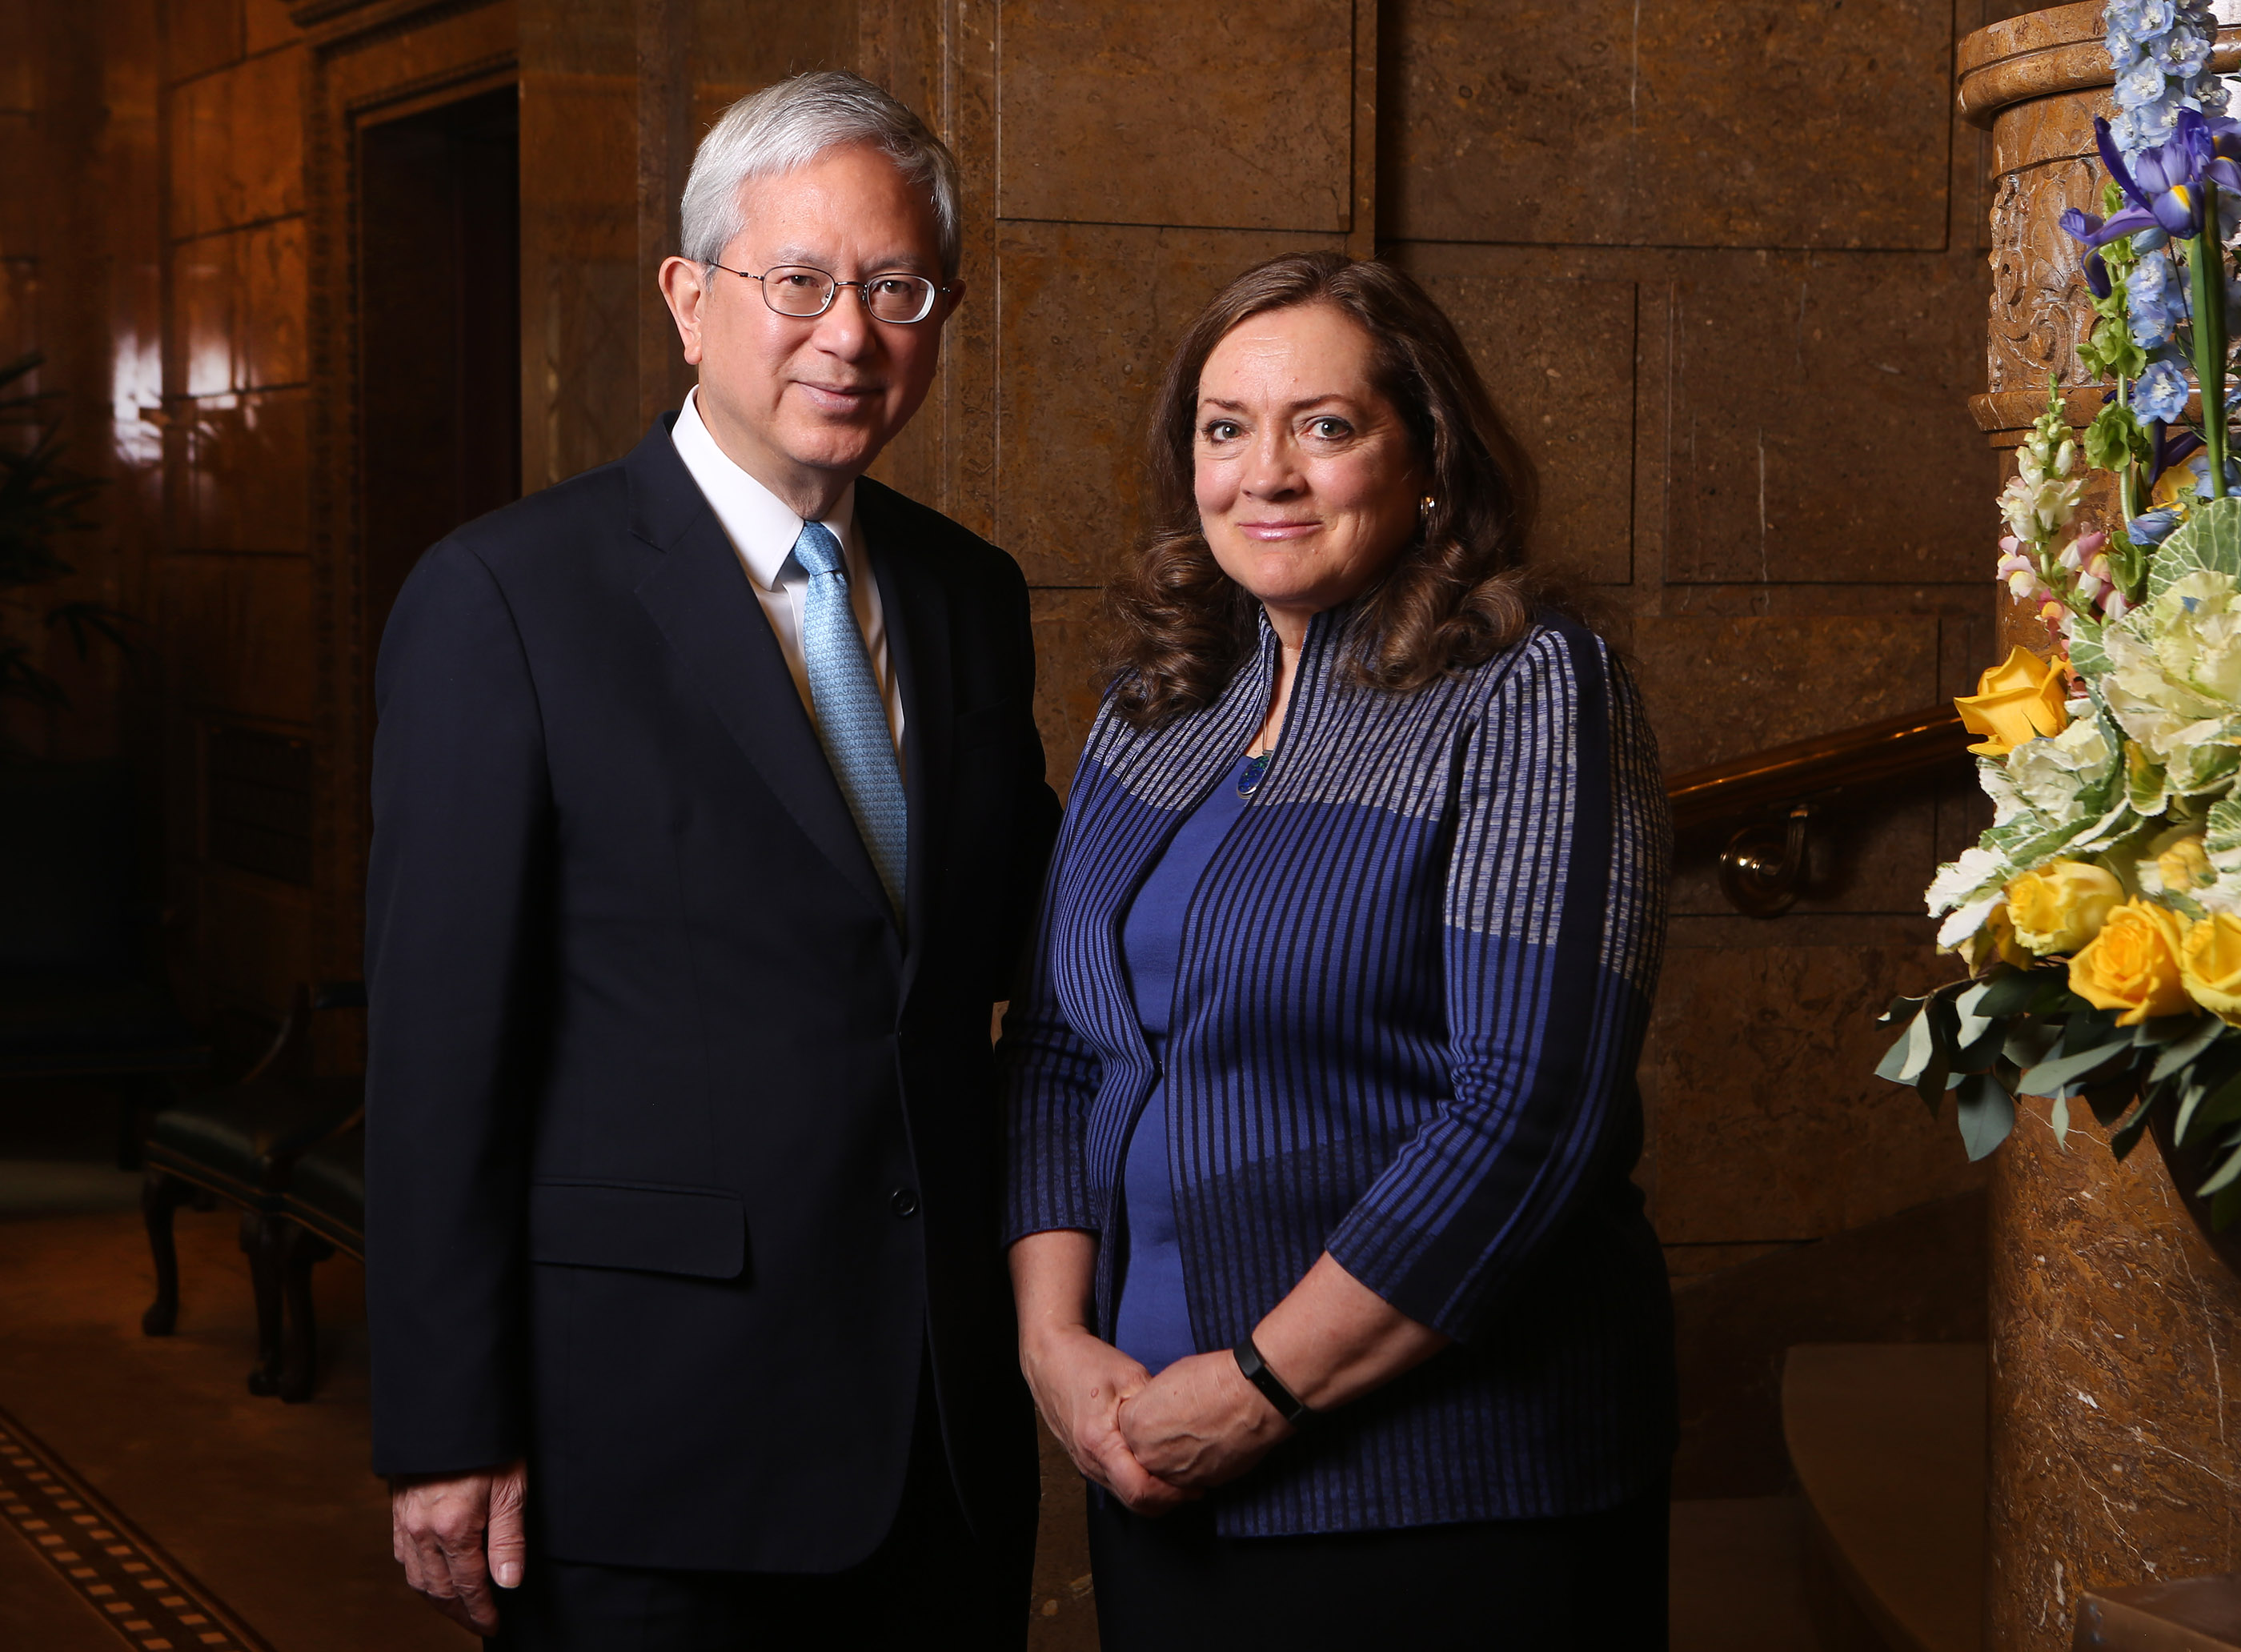 Elder Gerrit W. Gong, newly sustained as a member of the Quorum of the Twelve Apostles, and his wife, Sister Susan Gong, in Salt Lake City on Friday, April 6, 2018.